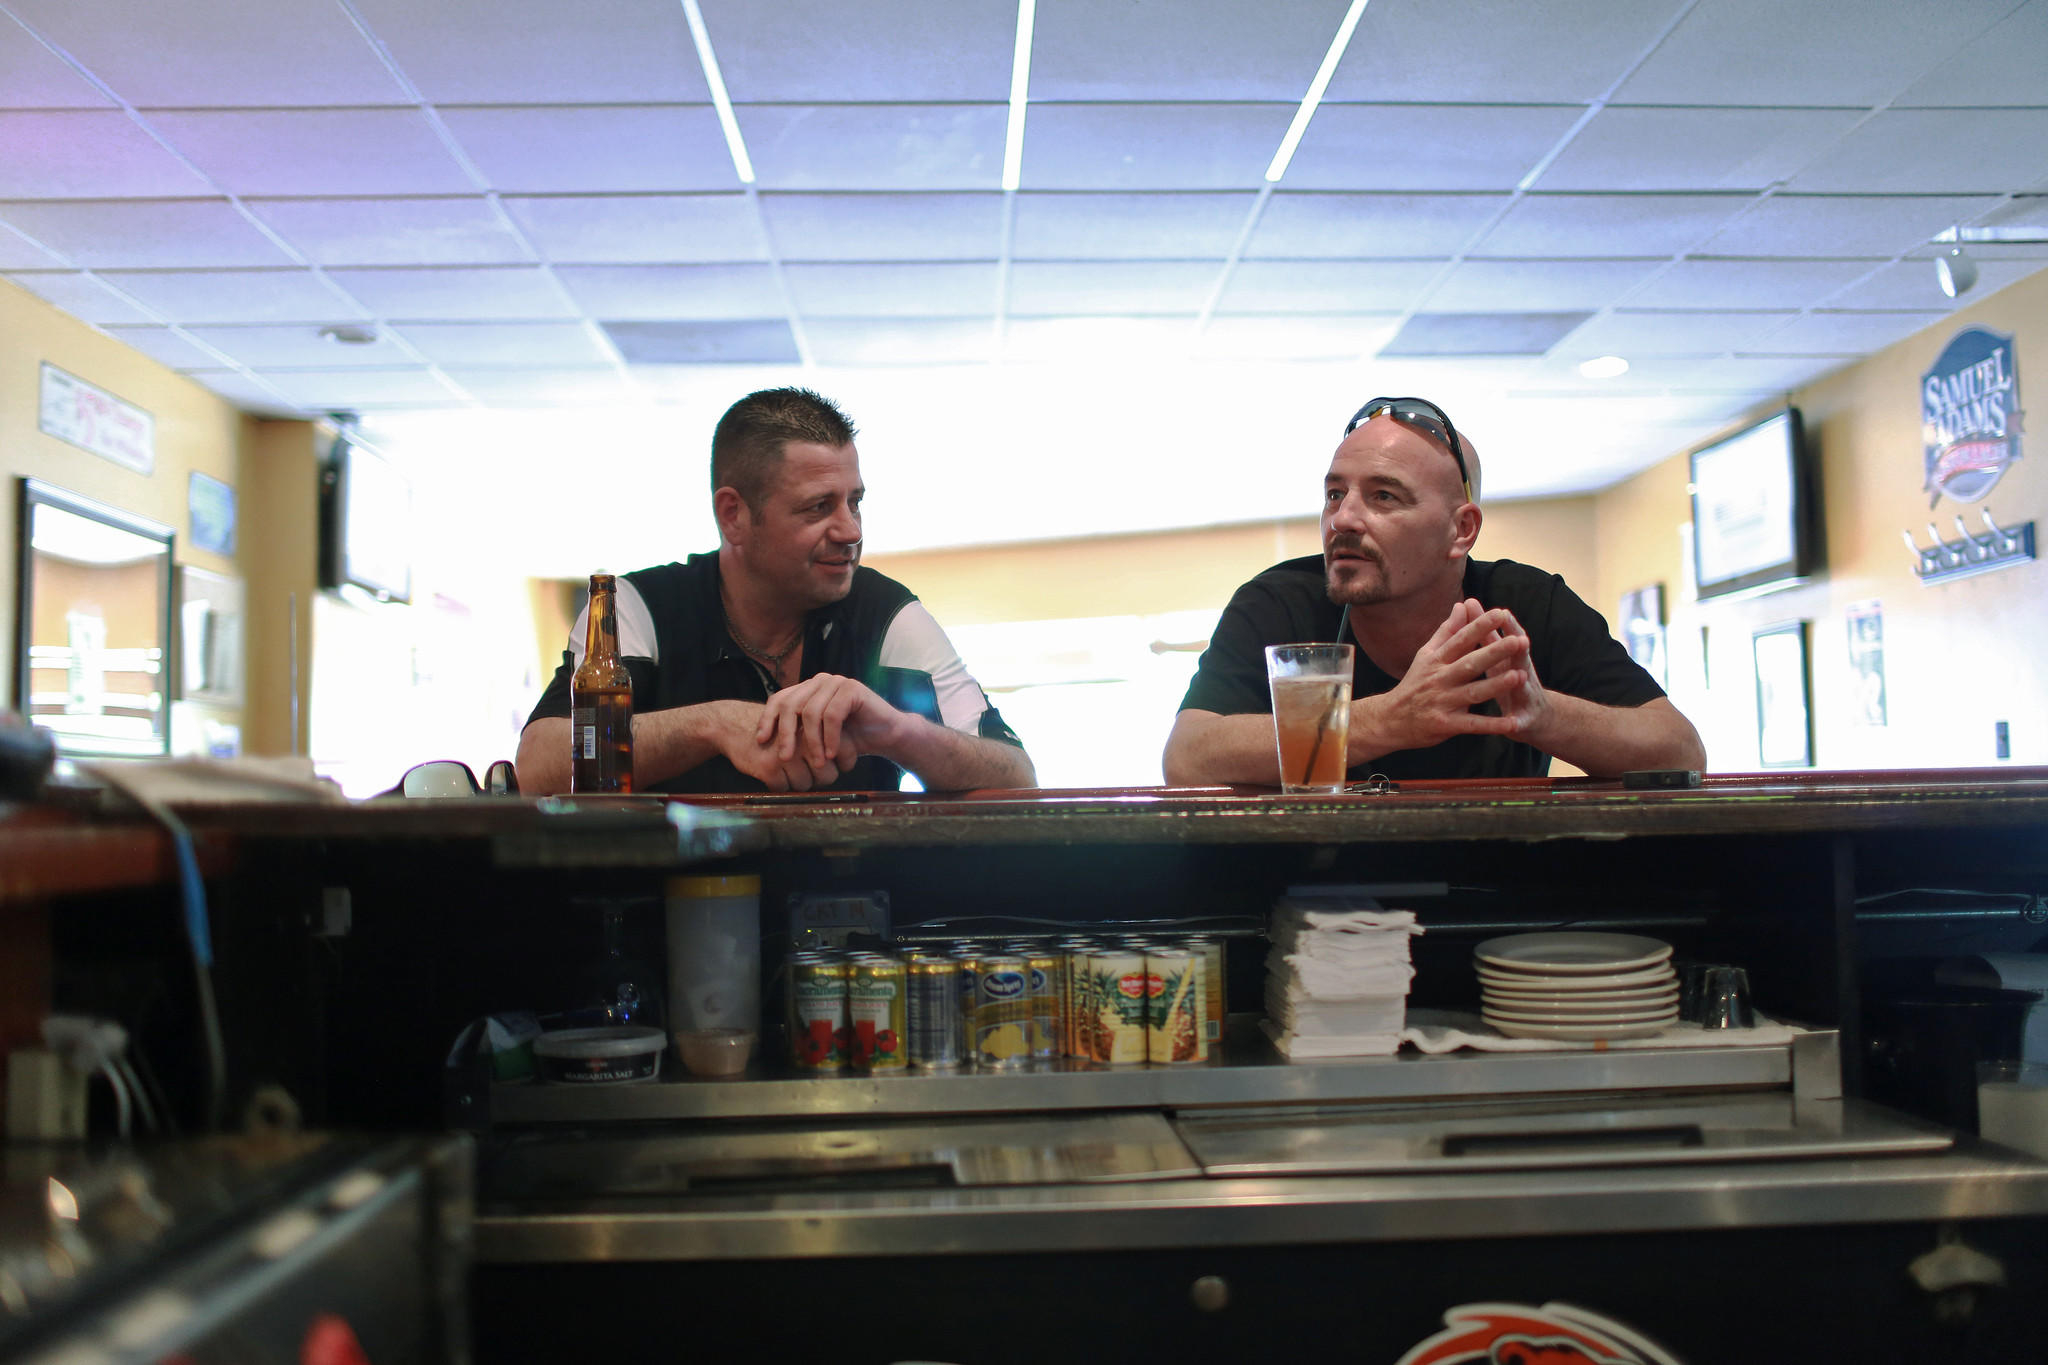 Brian Jones, left, and his older brother John Sawicki talk Friday at Eddie's Restaurant and Lounge in Arlington Heights. Jones, an Iraq War veteran, believes that the U.S. military pulled out of that country too soon, but that it's too late to go back now.